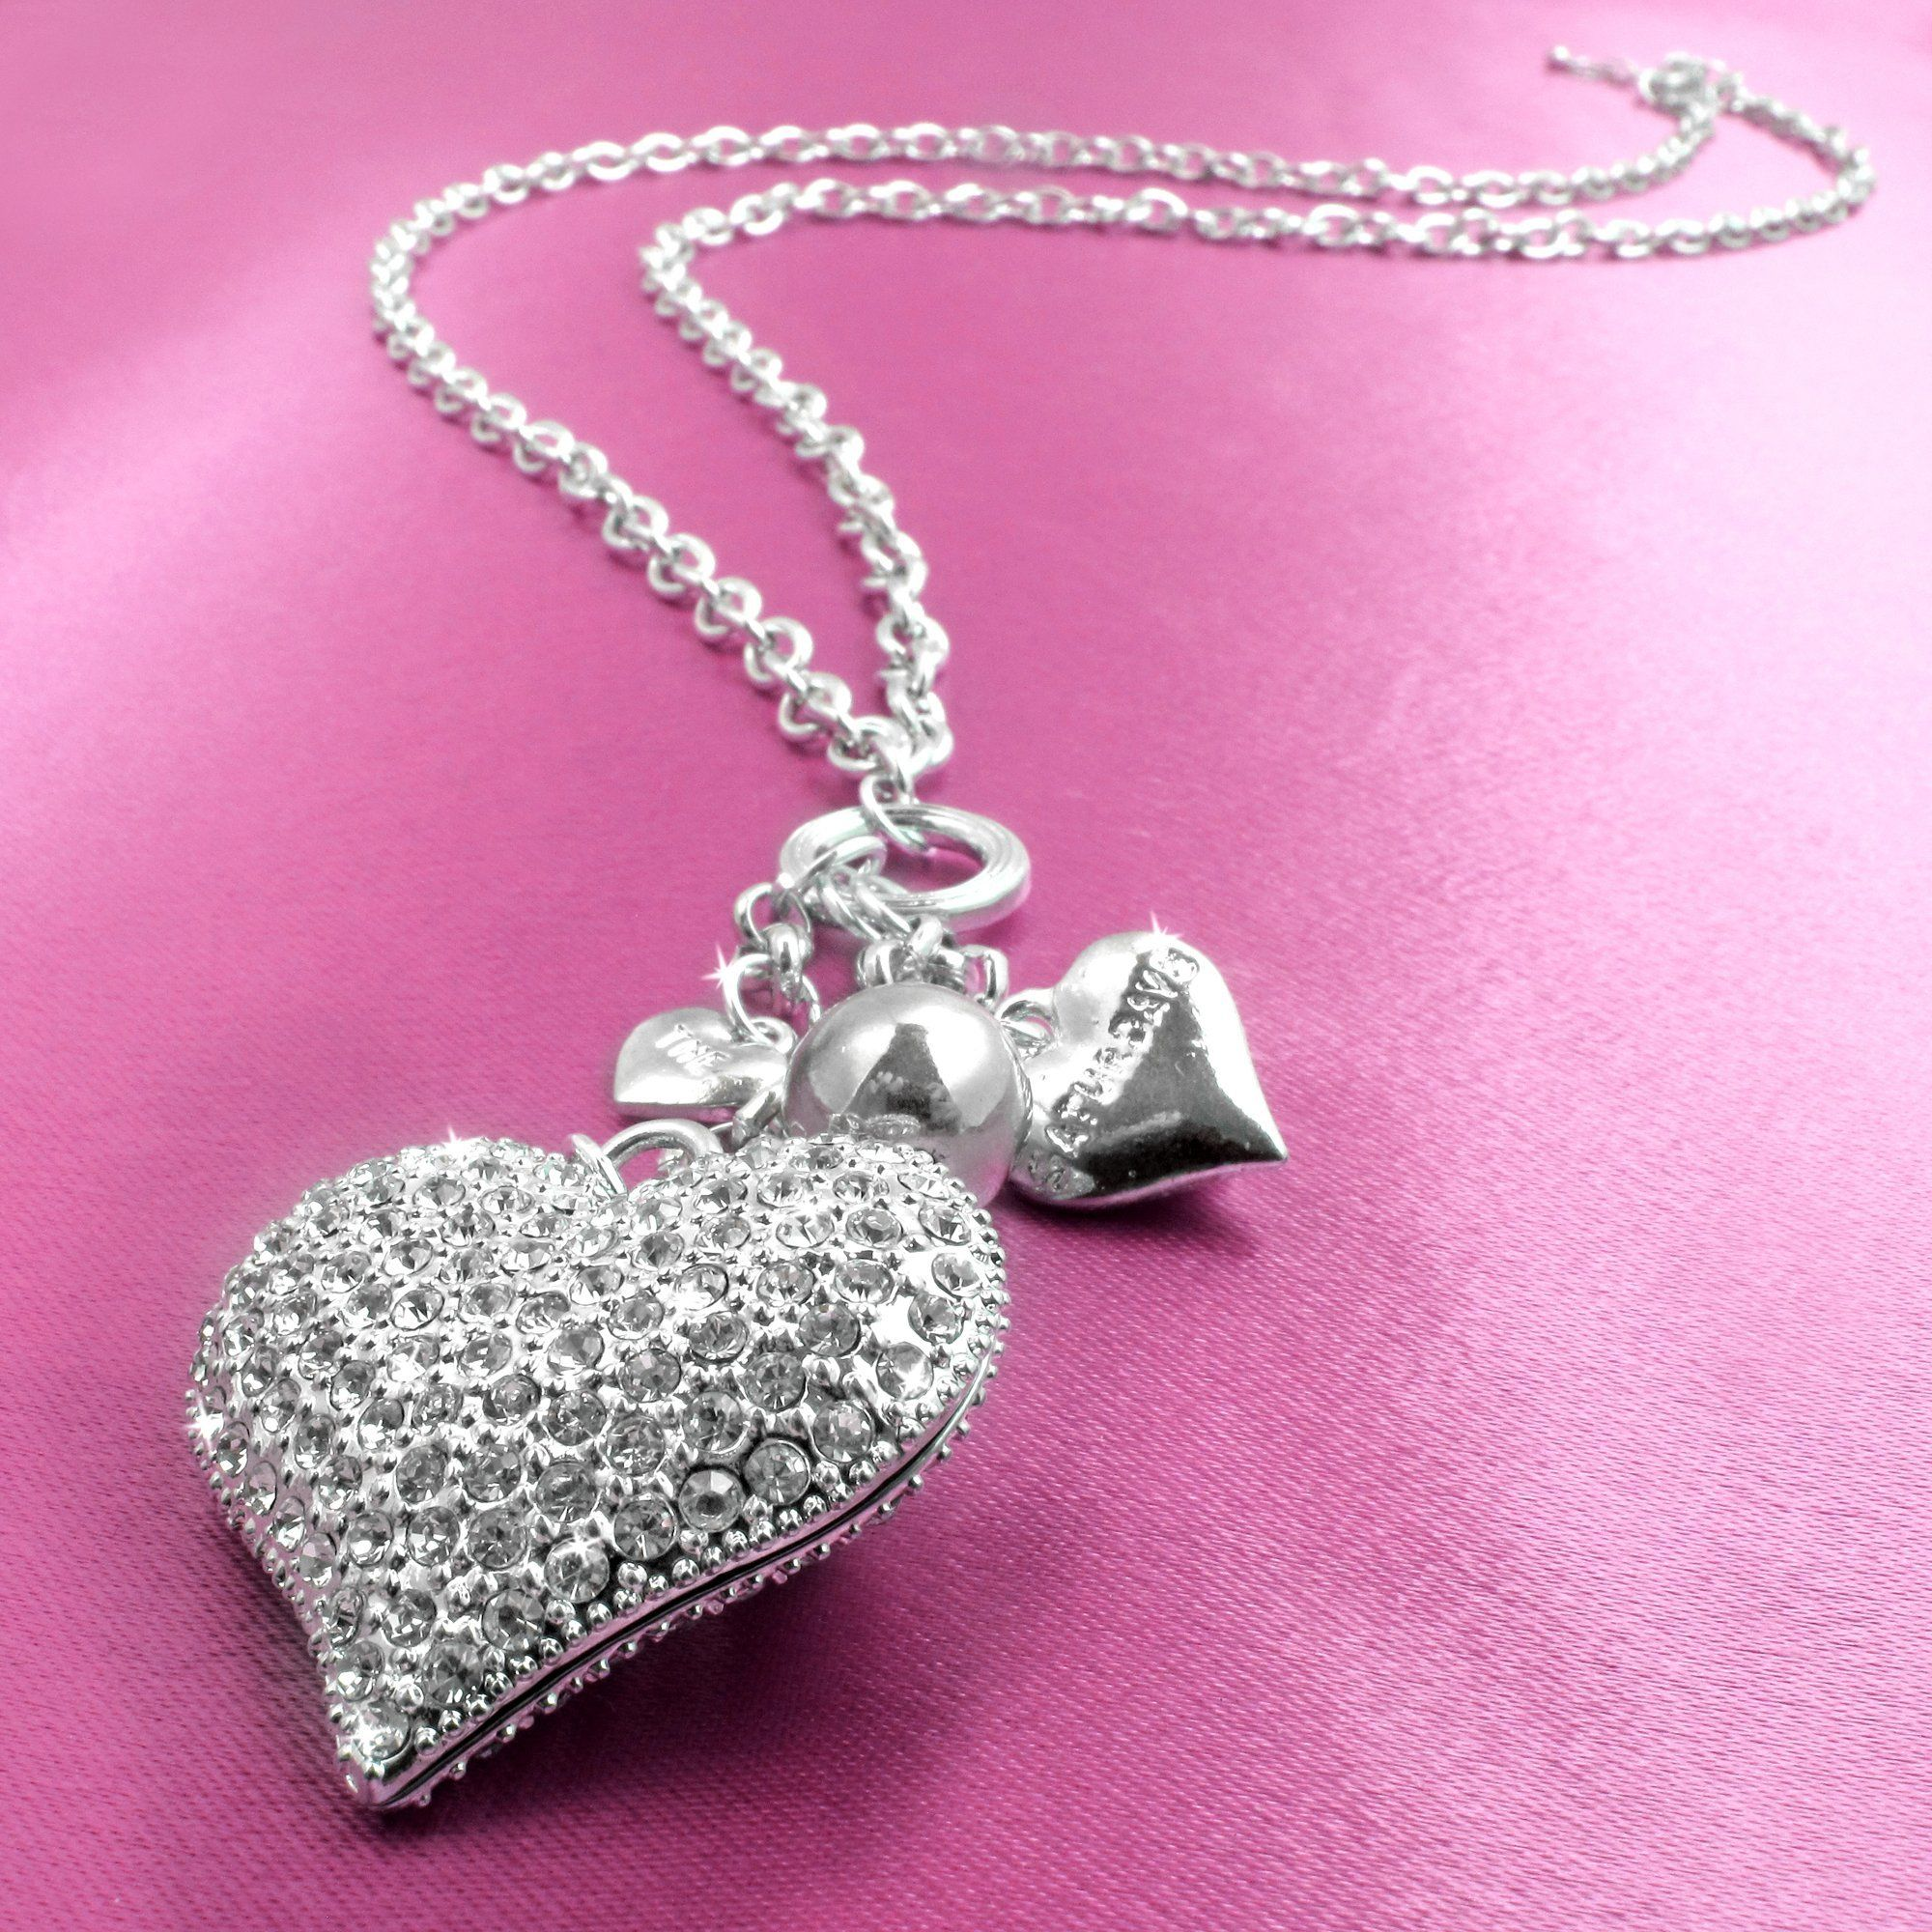 Unique Kay Jewelers $20 Necklace - Best Jewelry